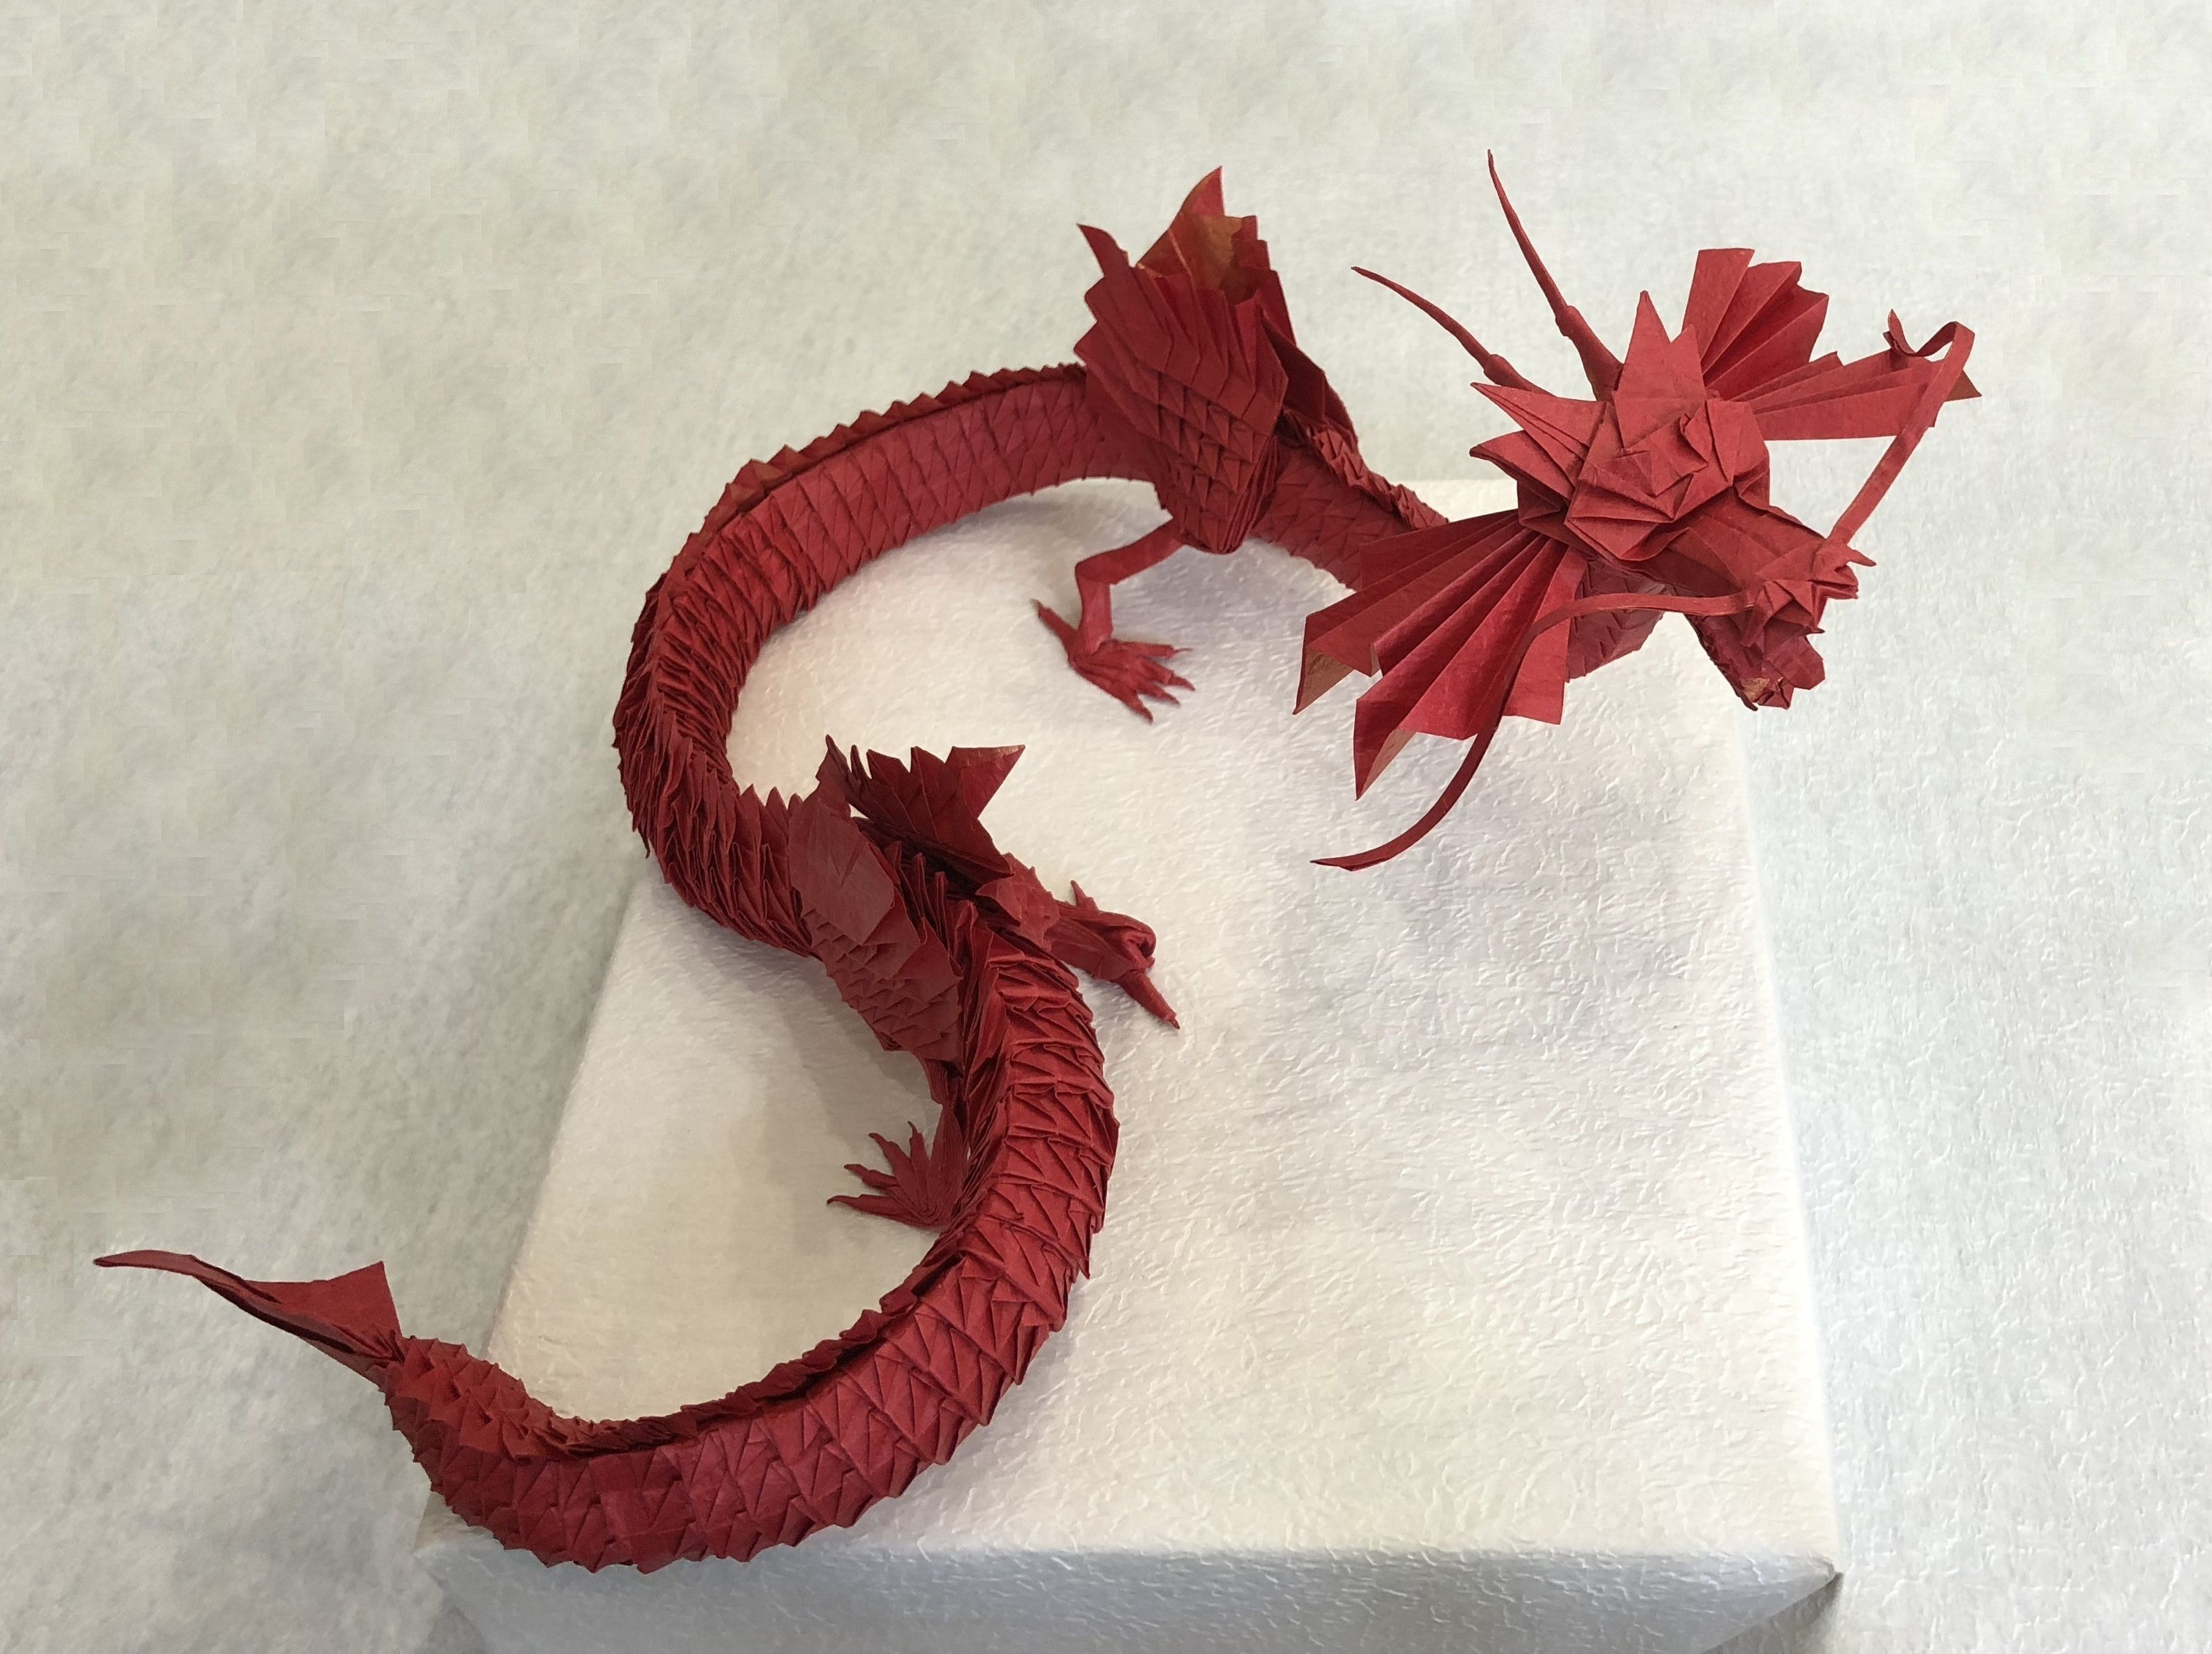 Chinese Dragon 4 5 By Mikiller Origami Dragon Useful Origami Origami Easy